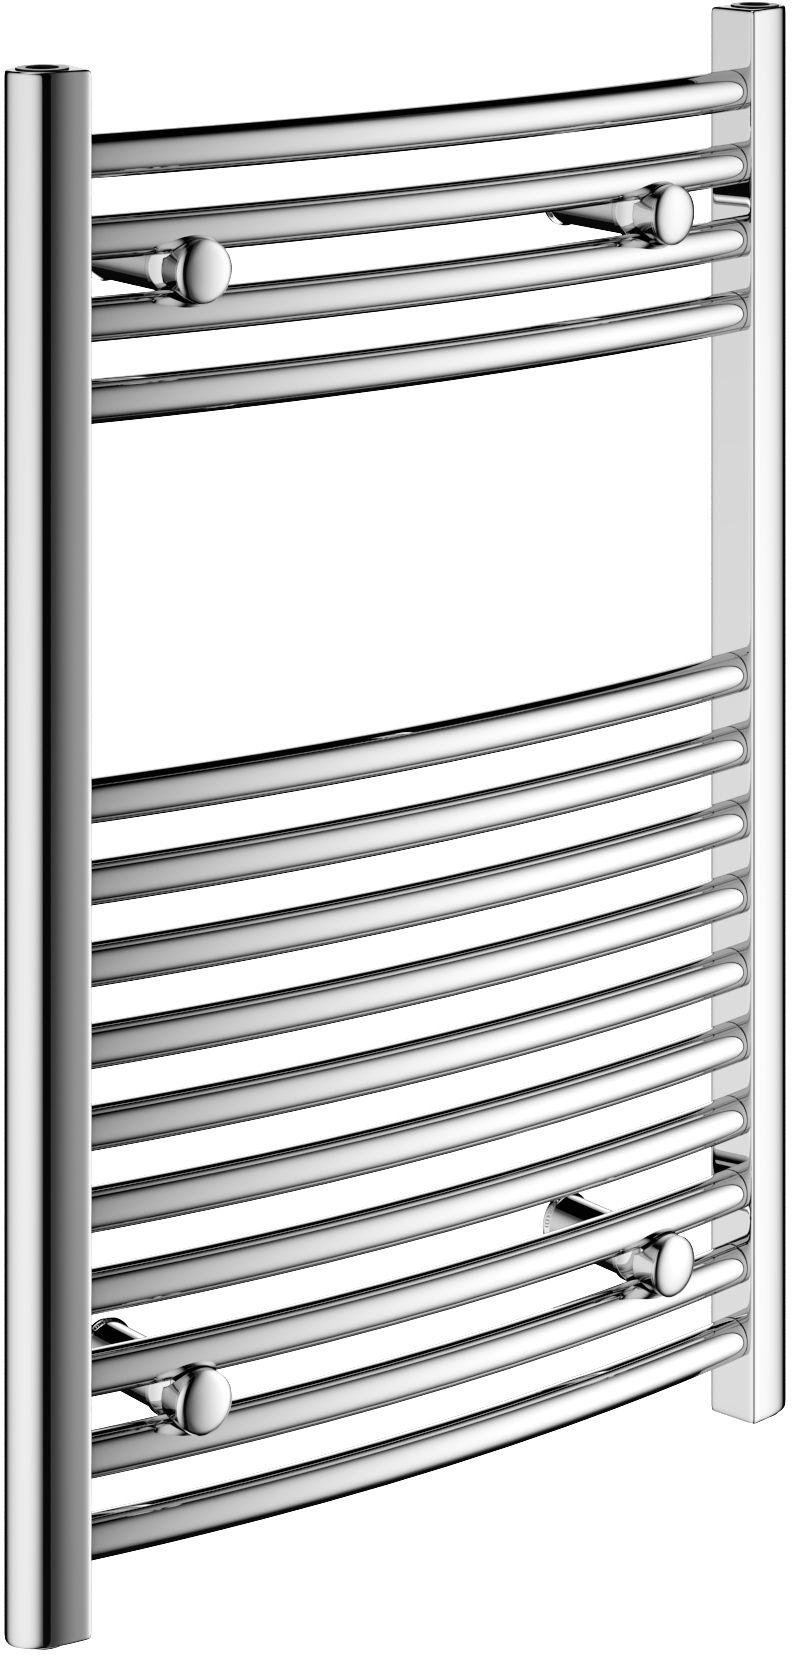 curved-towel-radiator-75-x-50cm-chrome